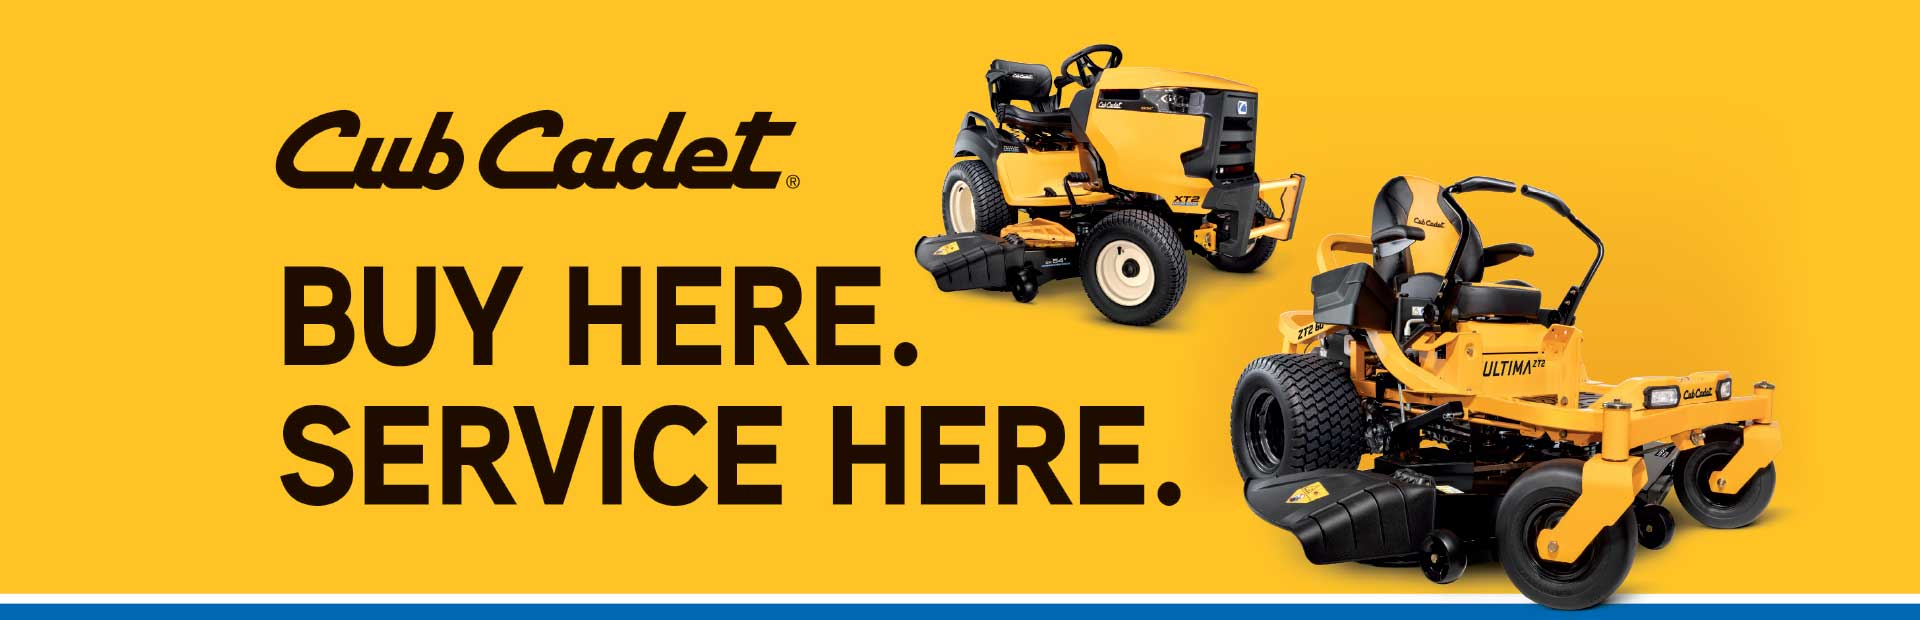 banner-cub-cadet-buy-here-service-here